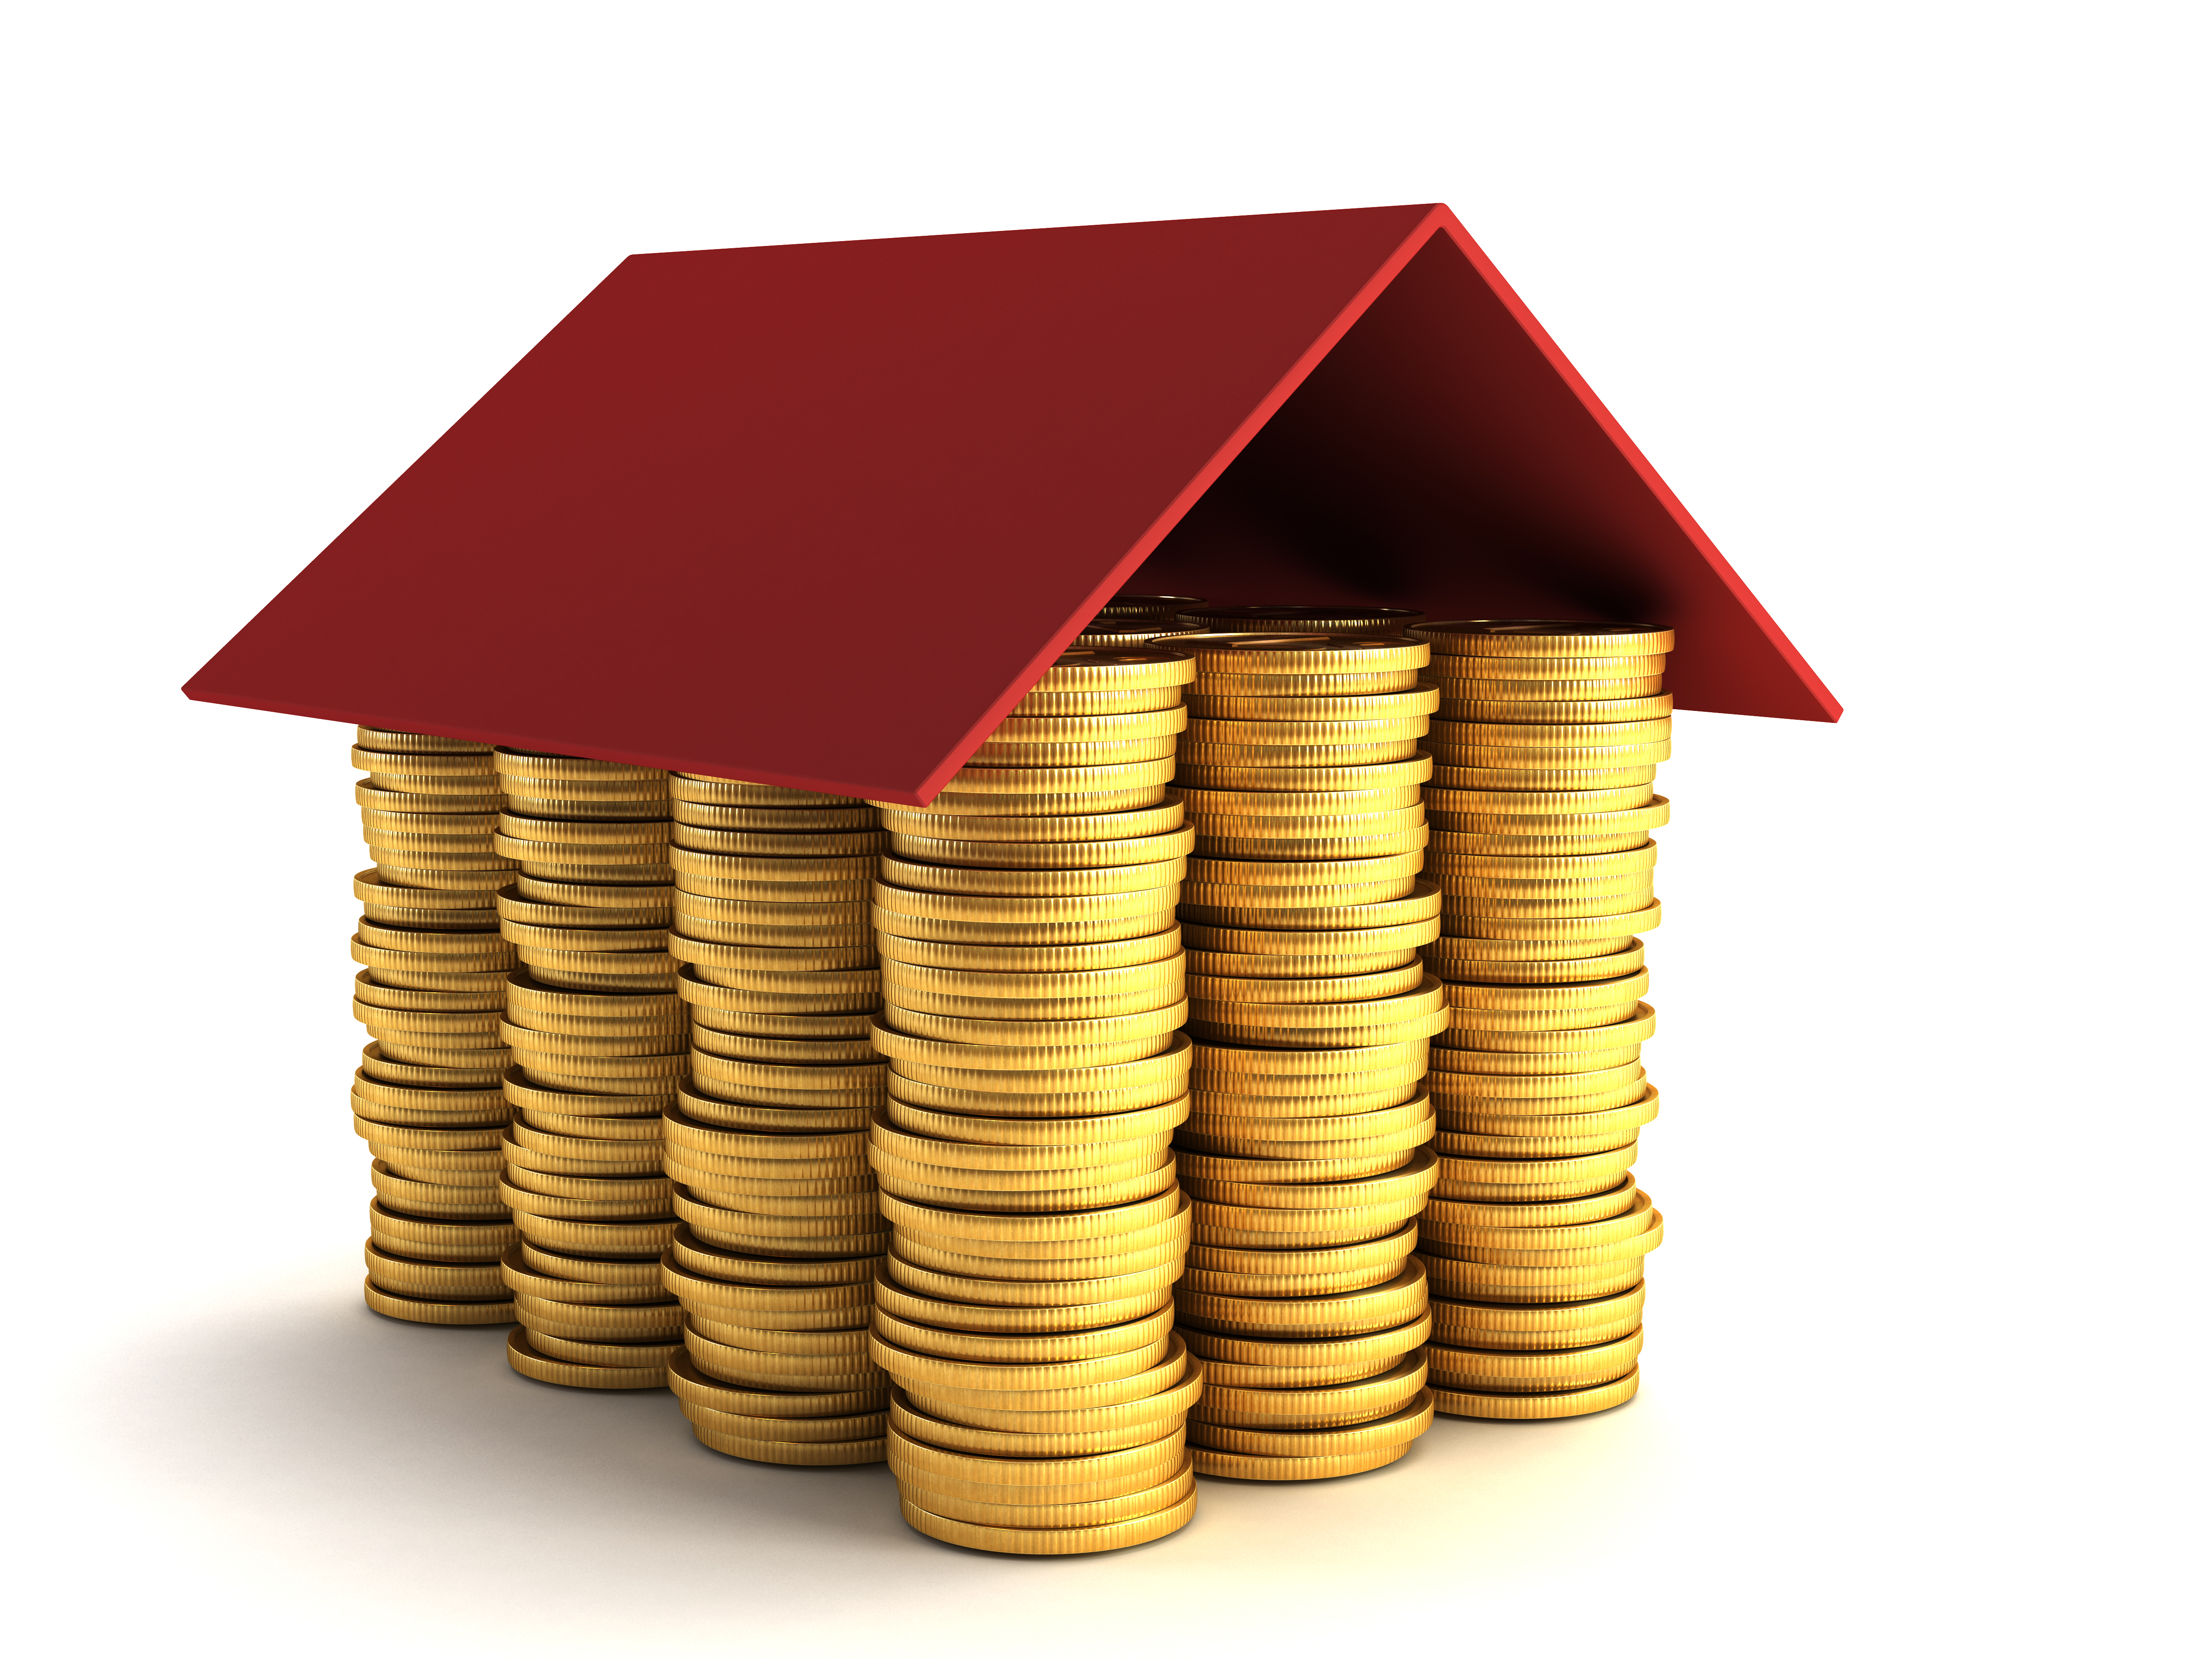 10 steps for an enjoyable investment | Living Here Property Solutions